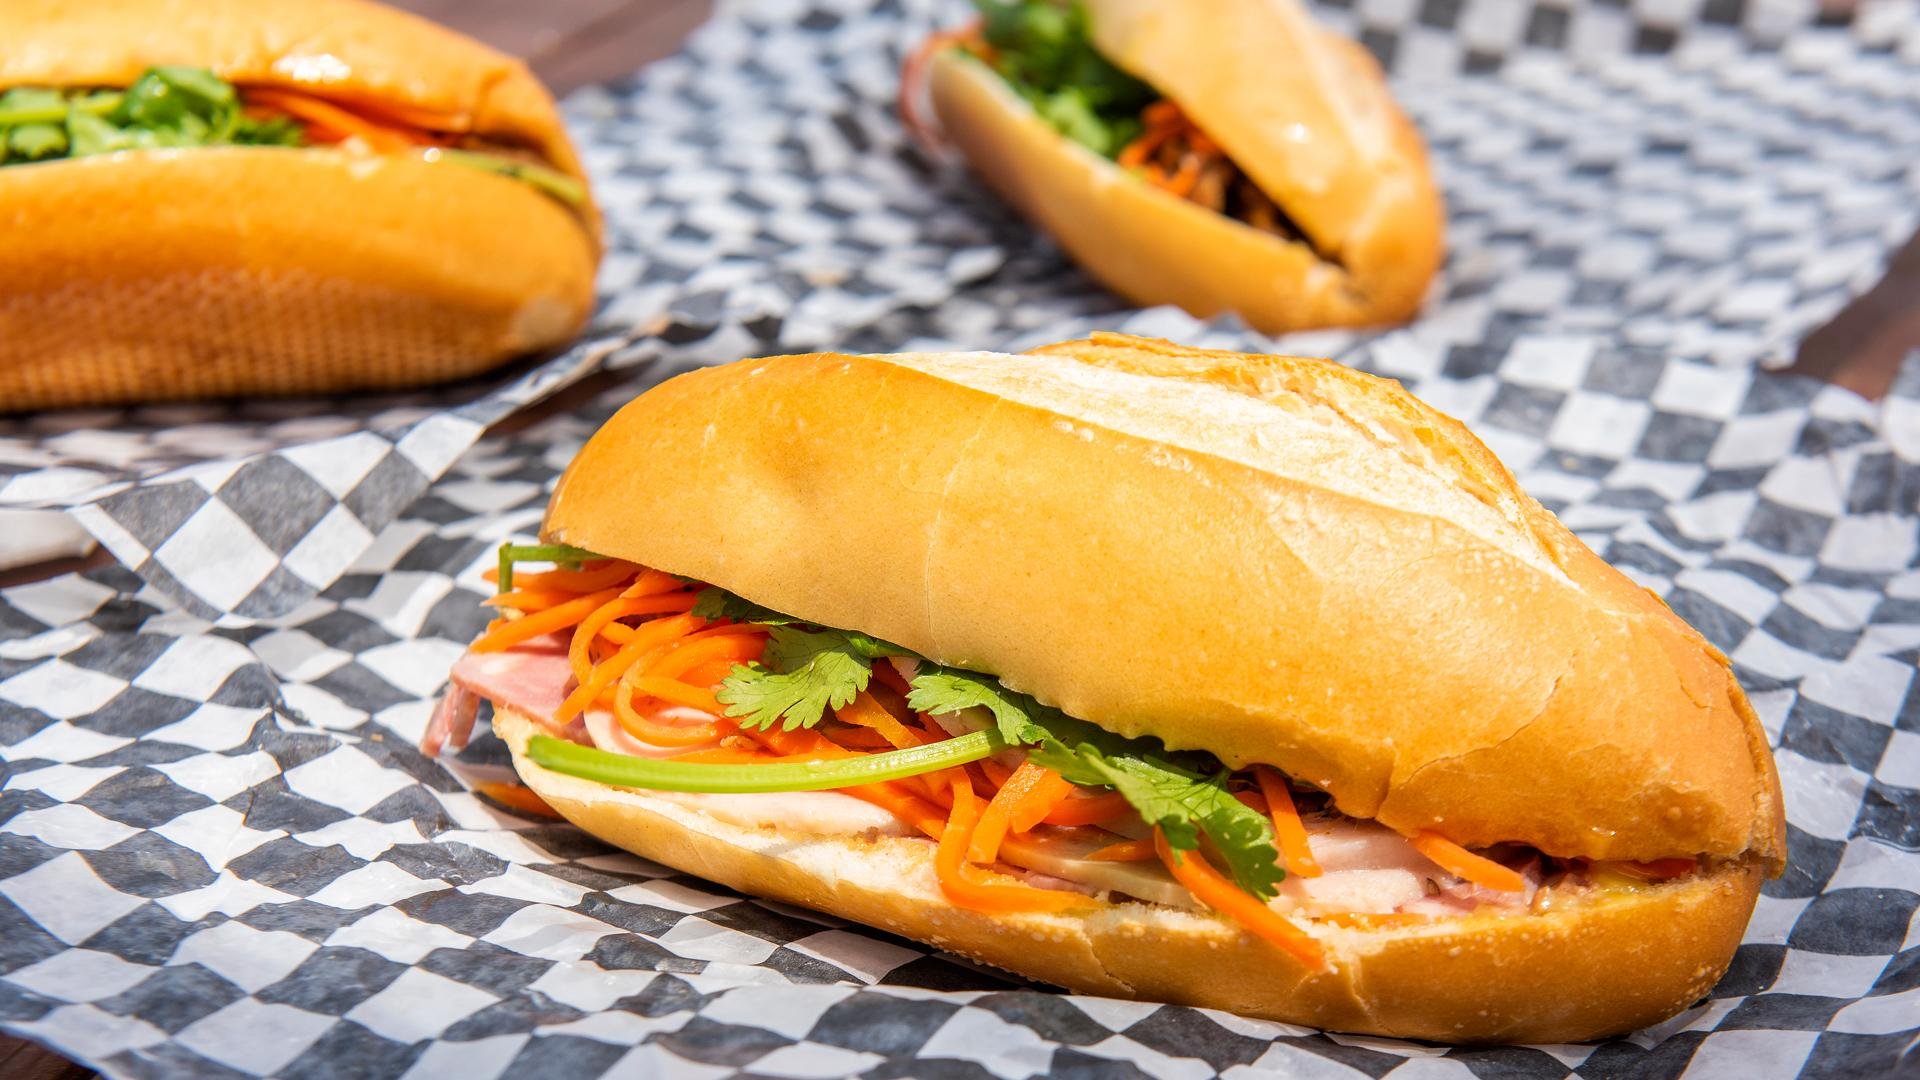 The best Toronto food markets   Sub sandwiches at Market 707